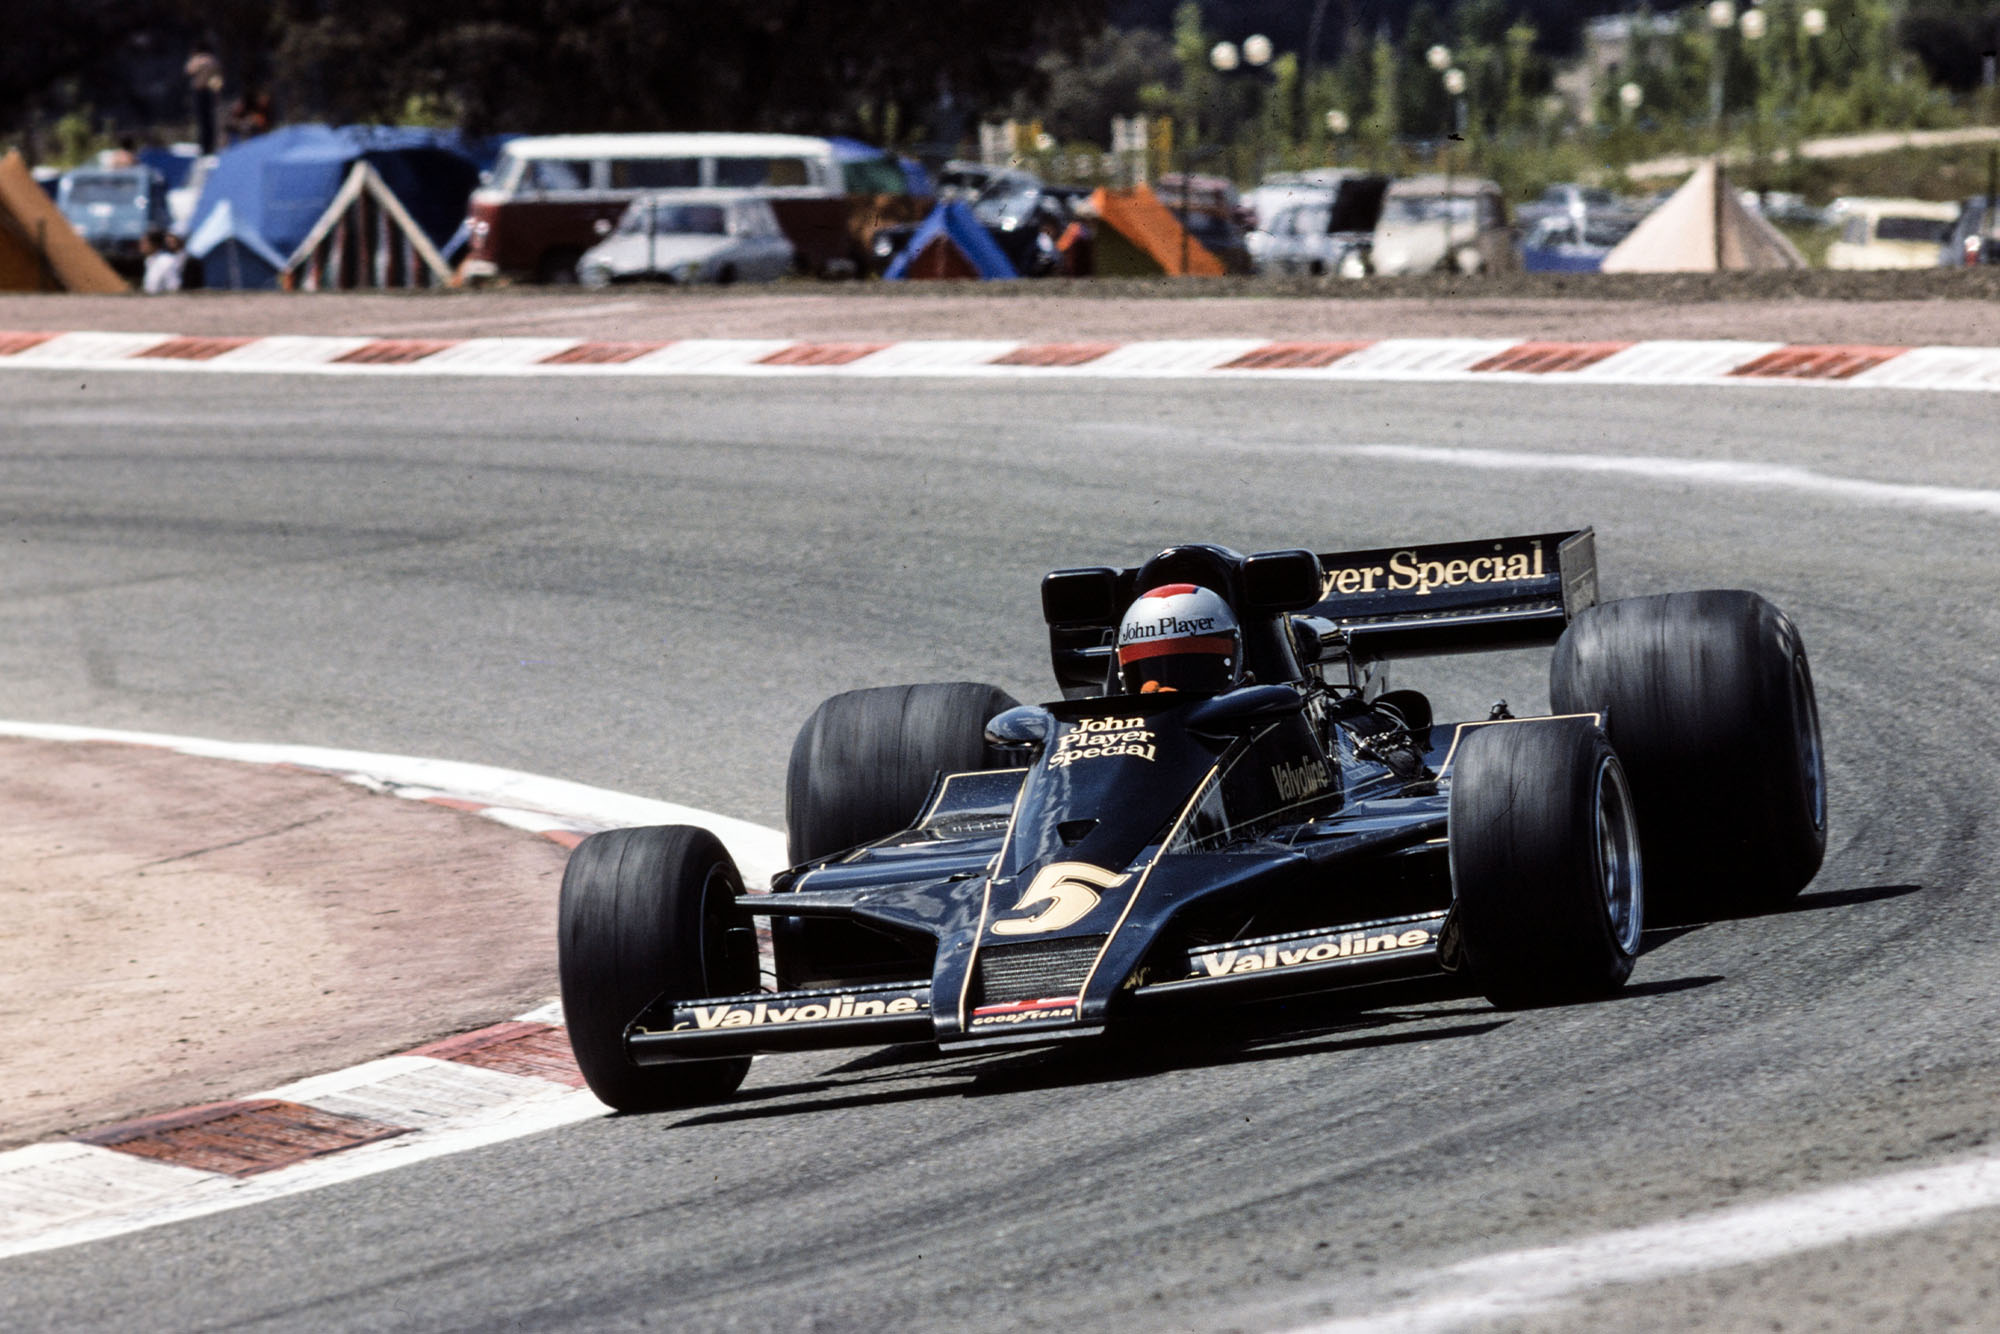 Mario Andretti (Lotus) at the 1977 Spanish Grand Prix, Jarama.